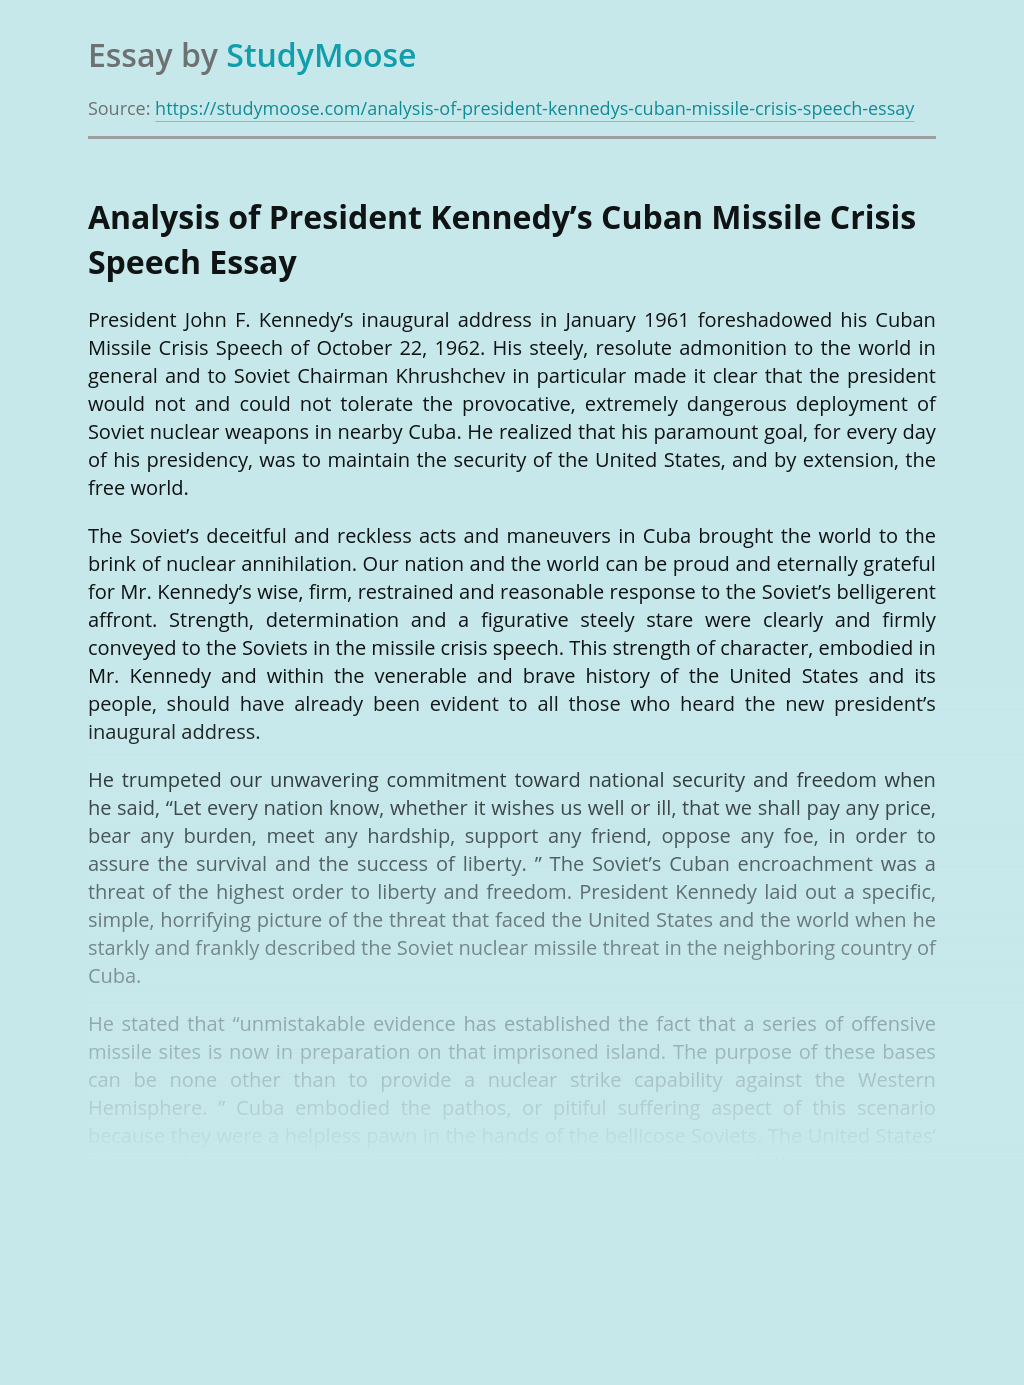 Analysis of President Kennedy's Cuban Missile Crisis Speech